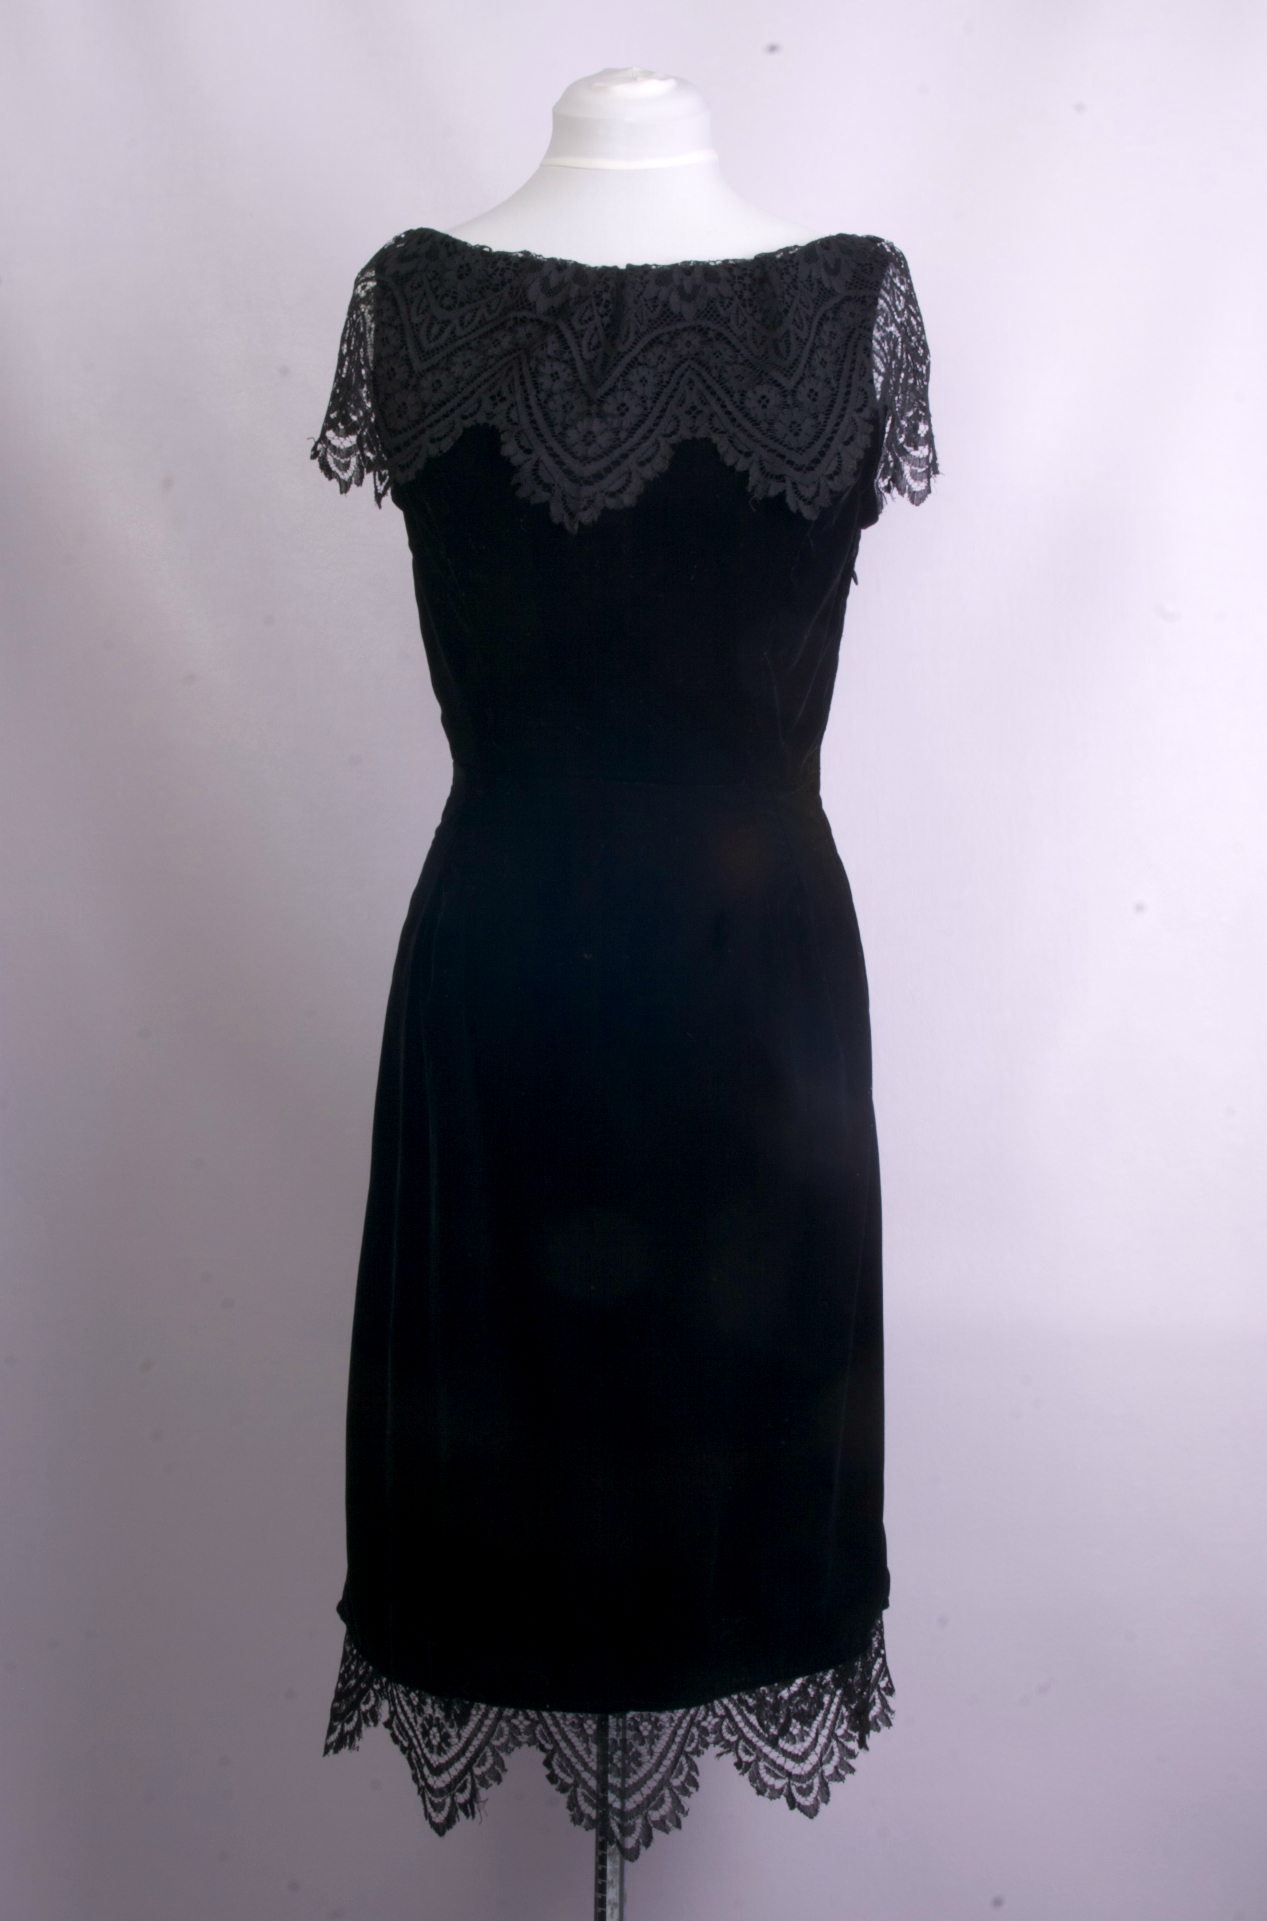 Wicked Queen Dress from The Emperor's Old Clothes